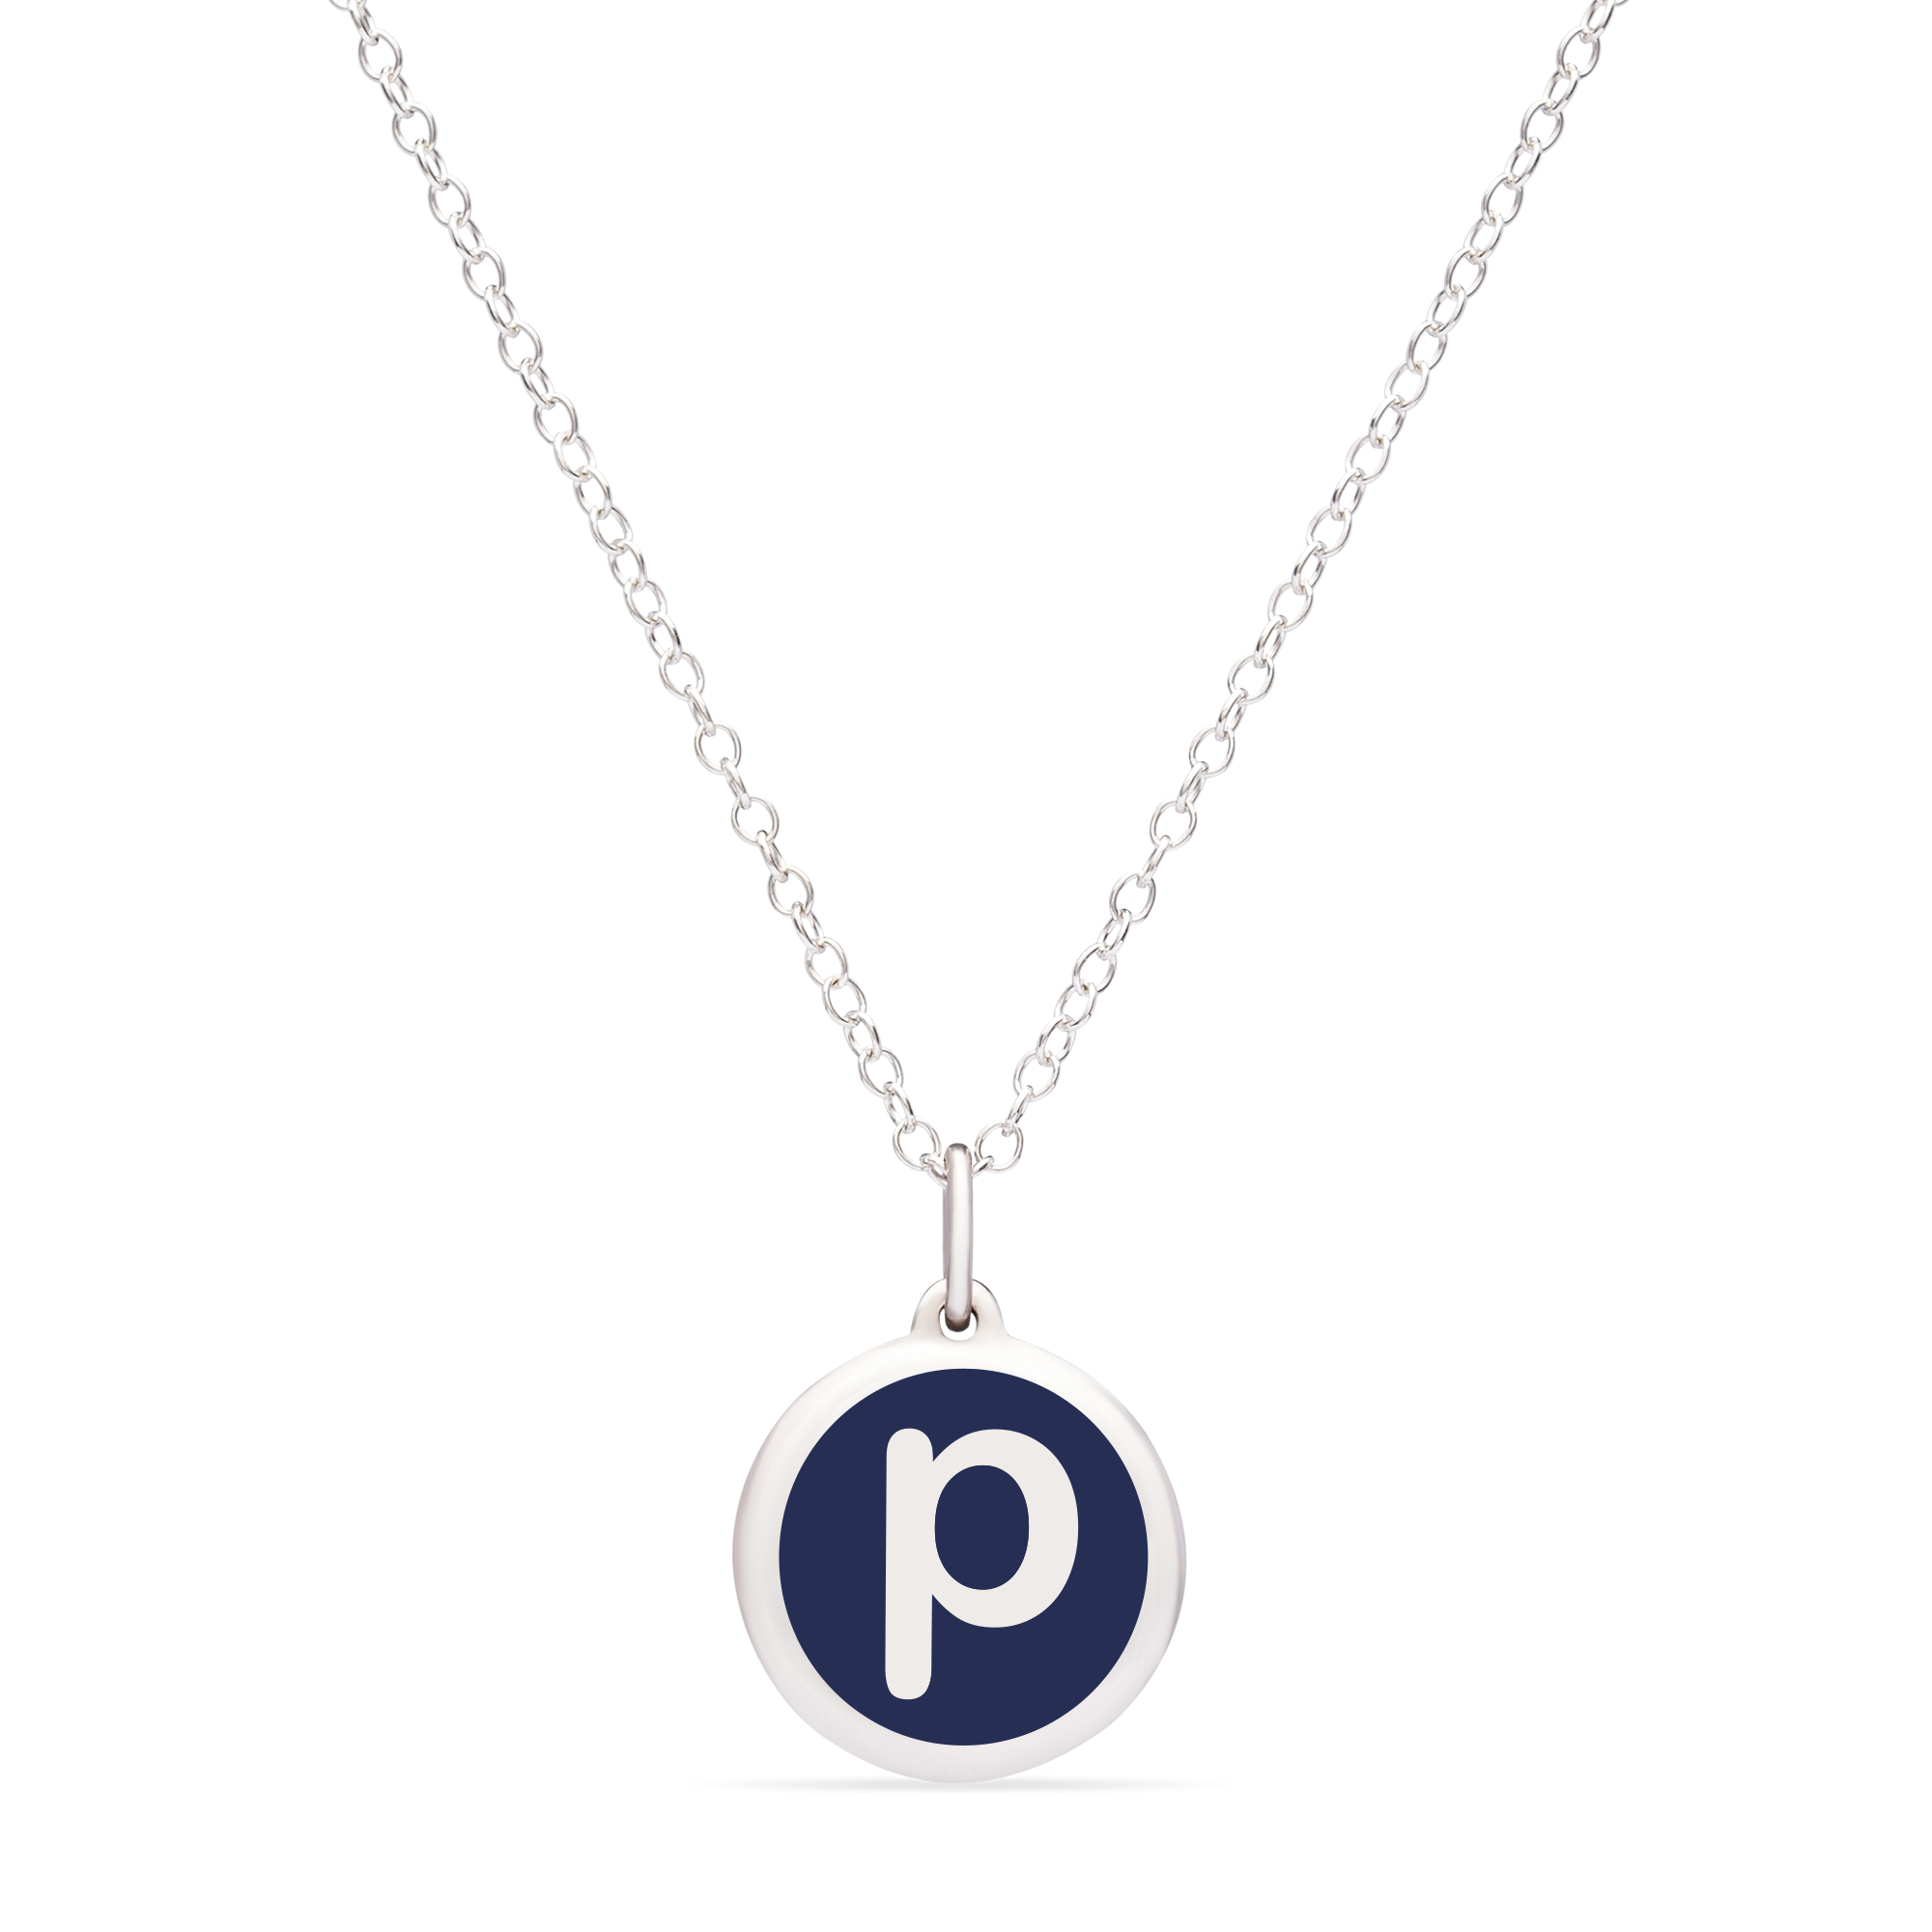 MINI INITIAL 'p' CHARM sterling silver with rhodium plate